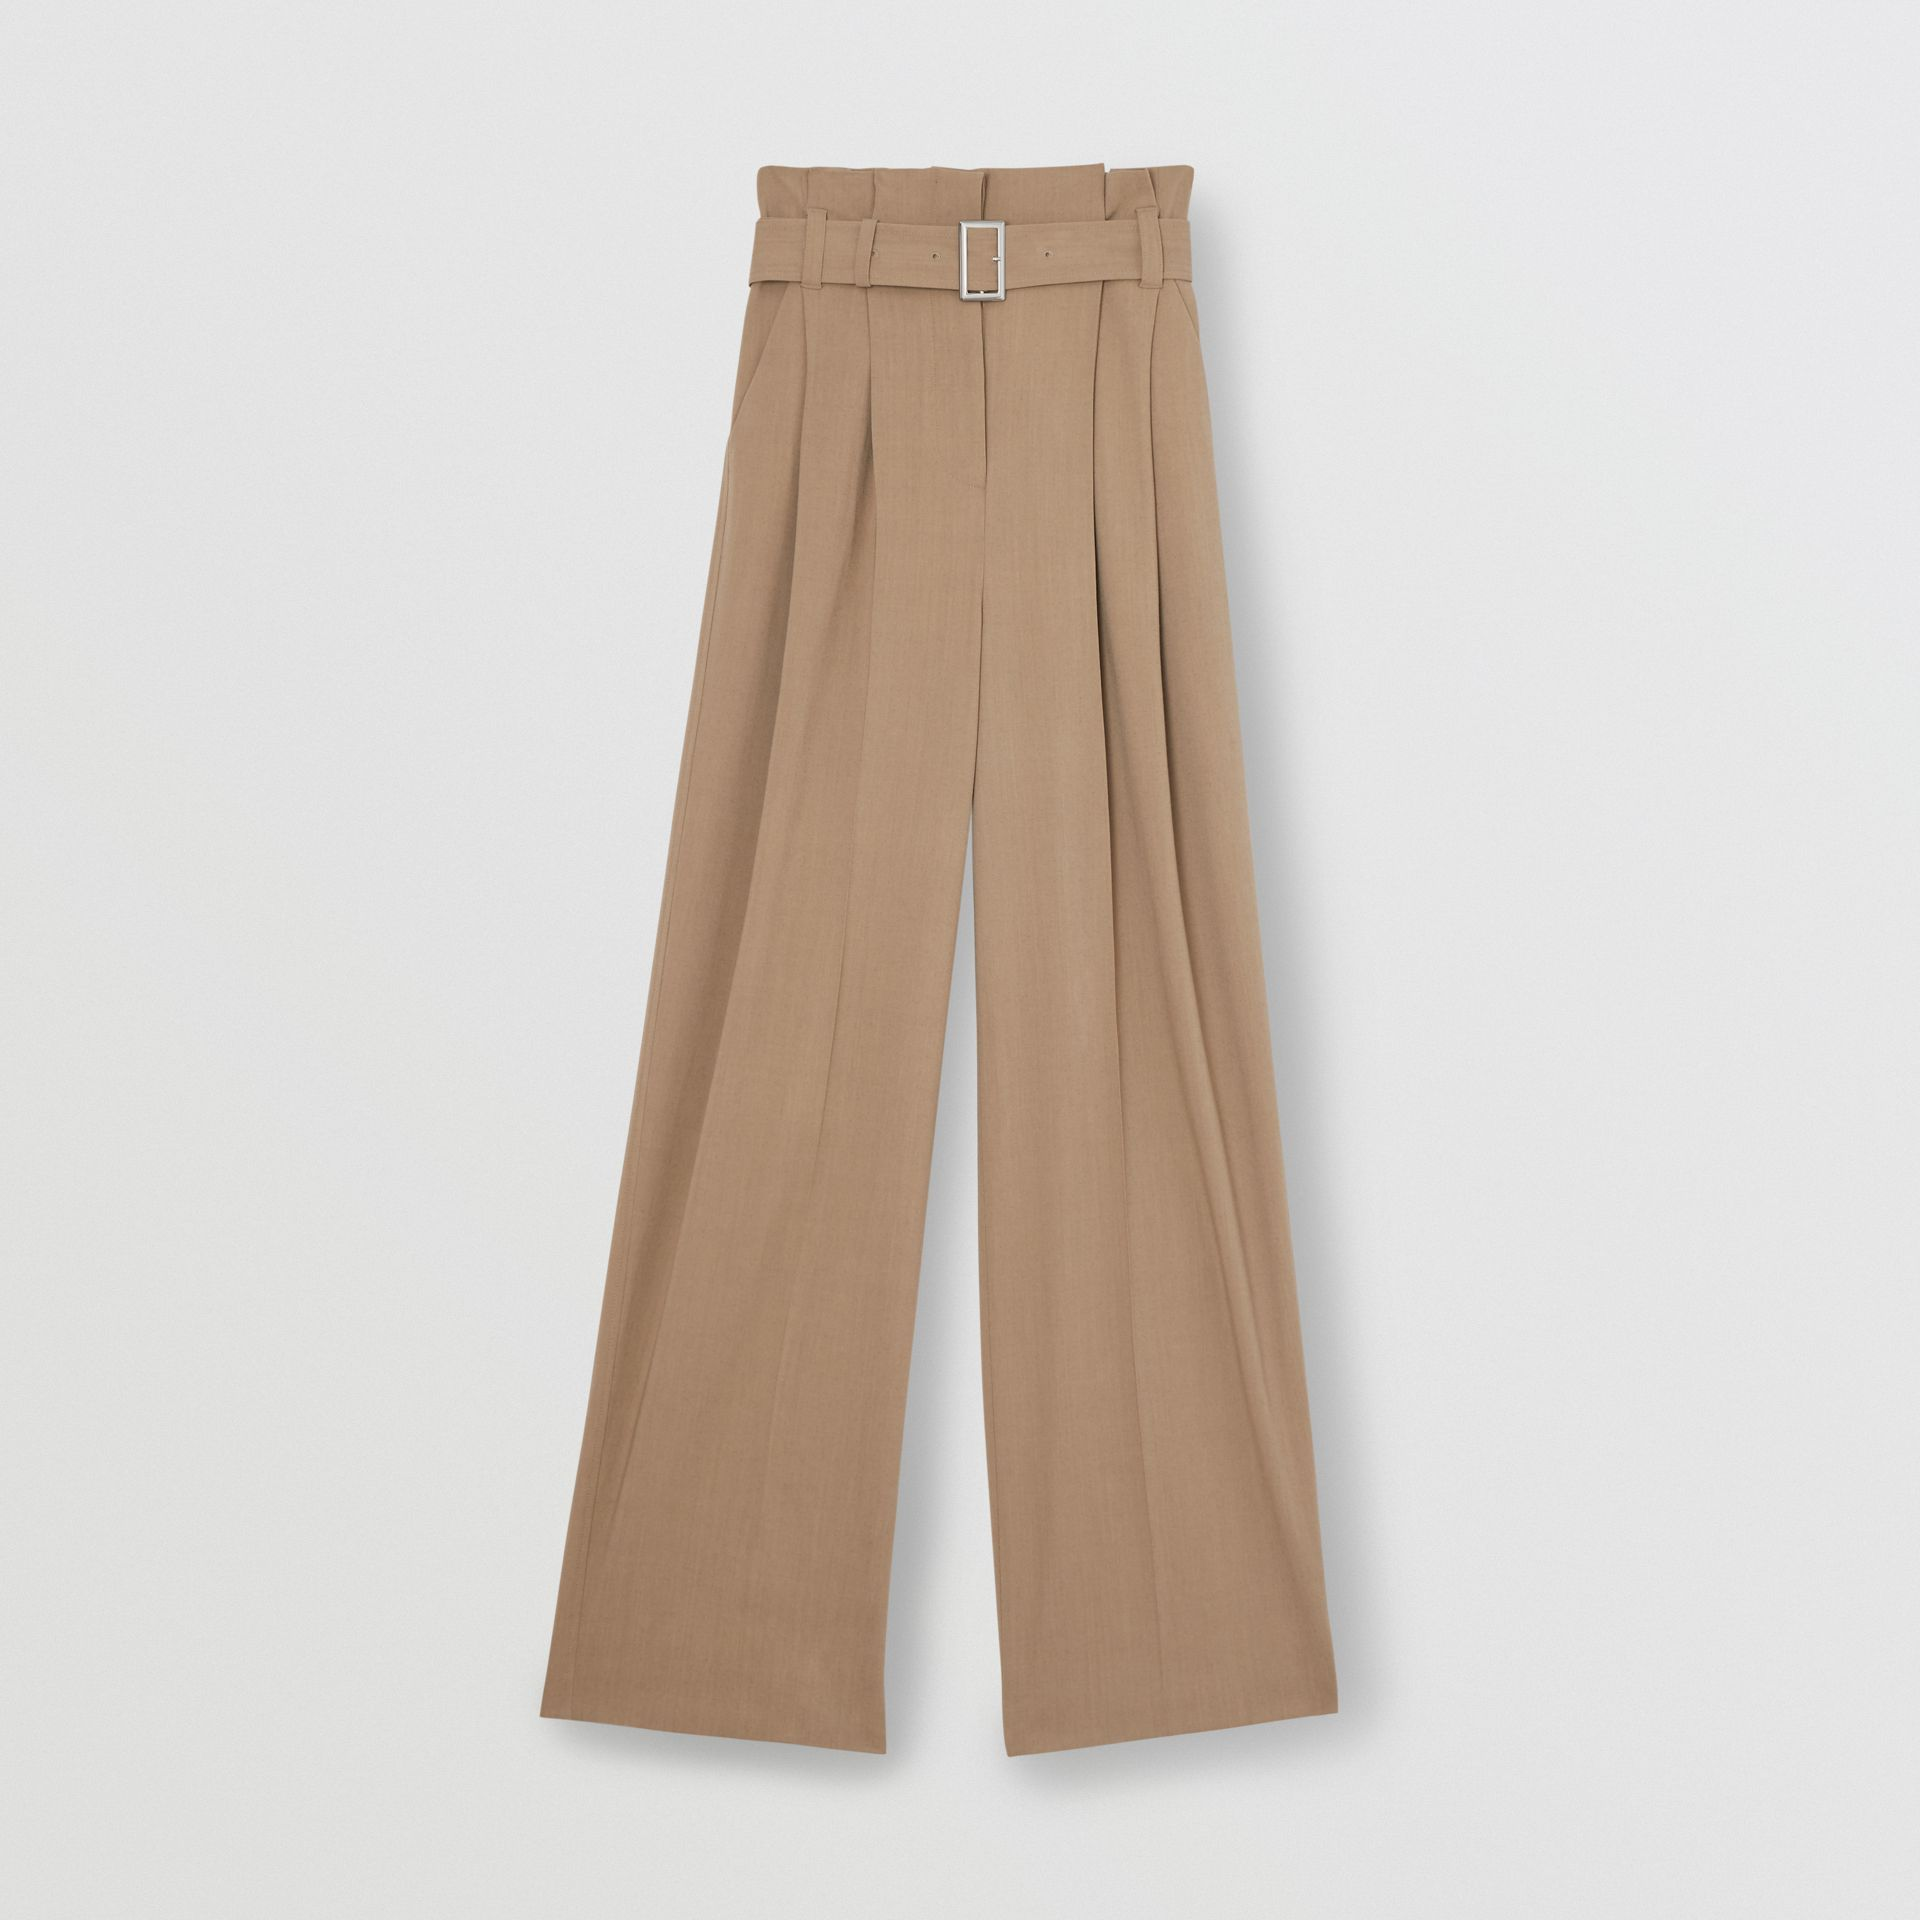 Wool Blend High-waisted Trousers in Warm Taupe - Women | Burberry - gallery image 3